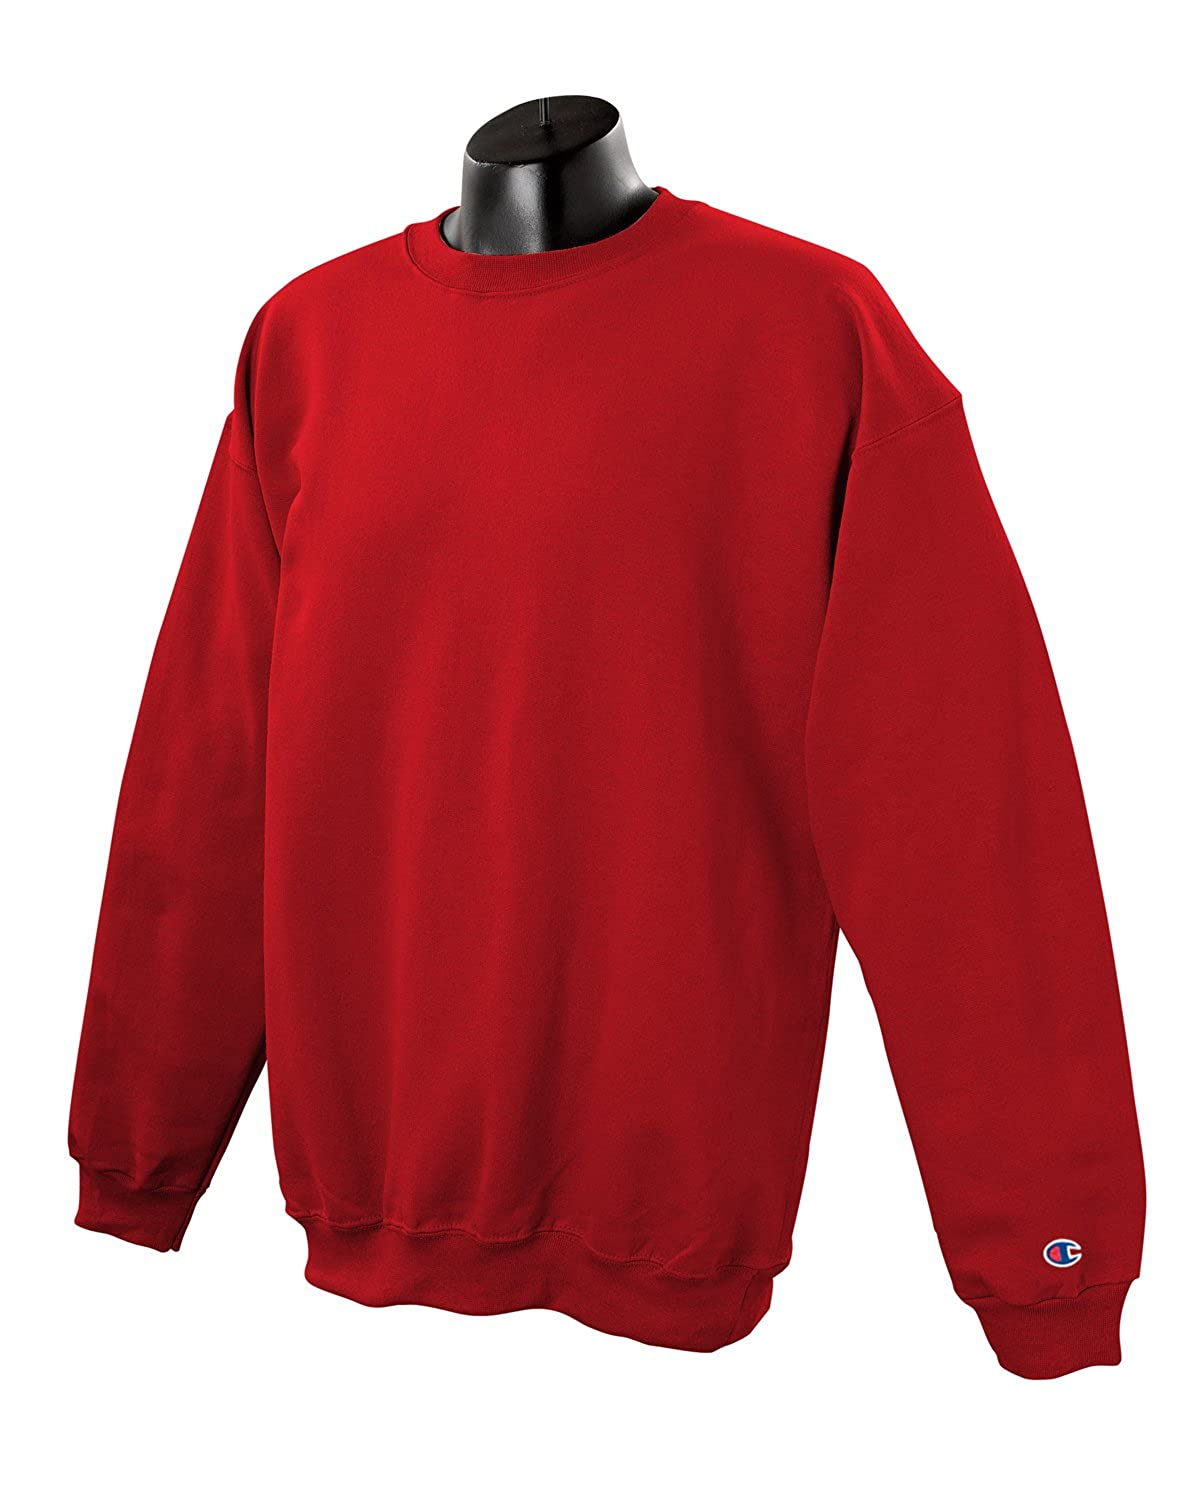 Champion Authentic Cotton/Poly Crewneck Sweatshirt A&E Designs S122